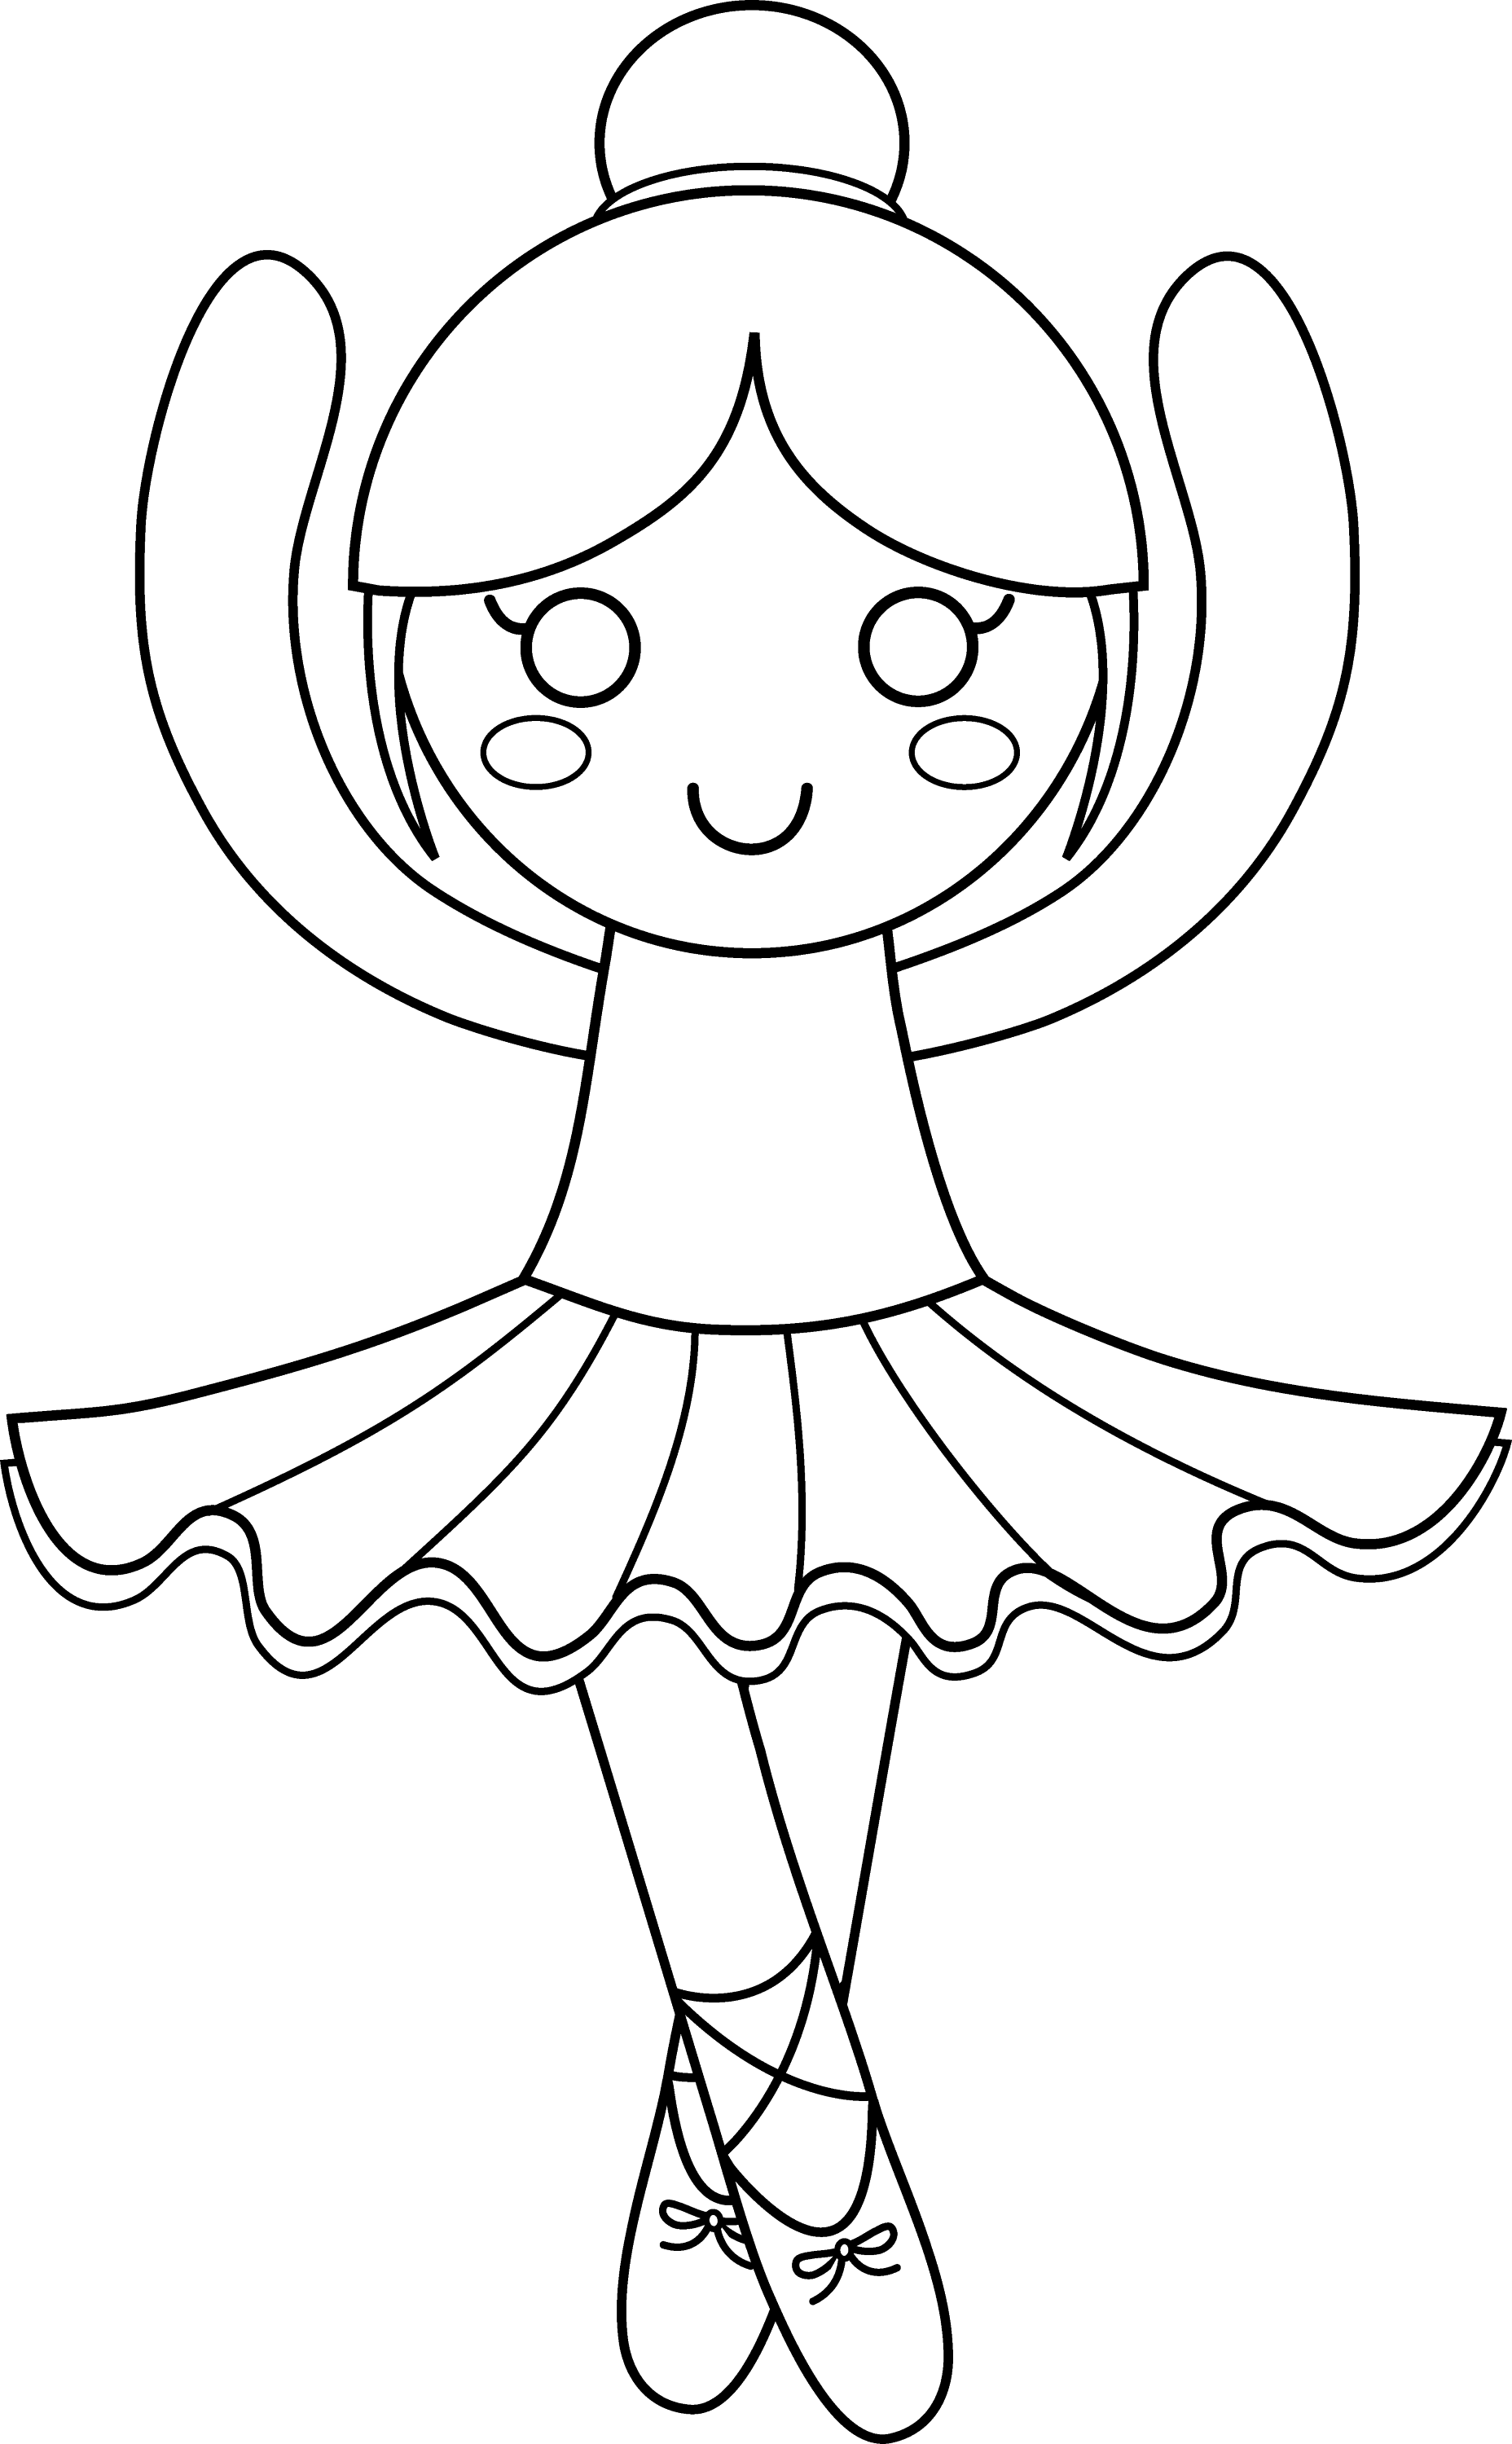 Cute Ballerina Coloring Page